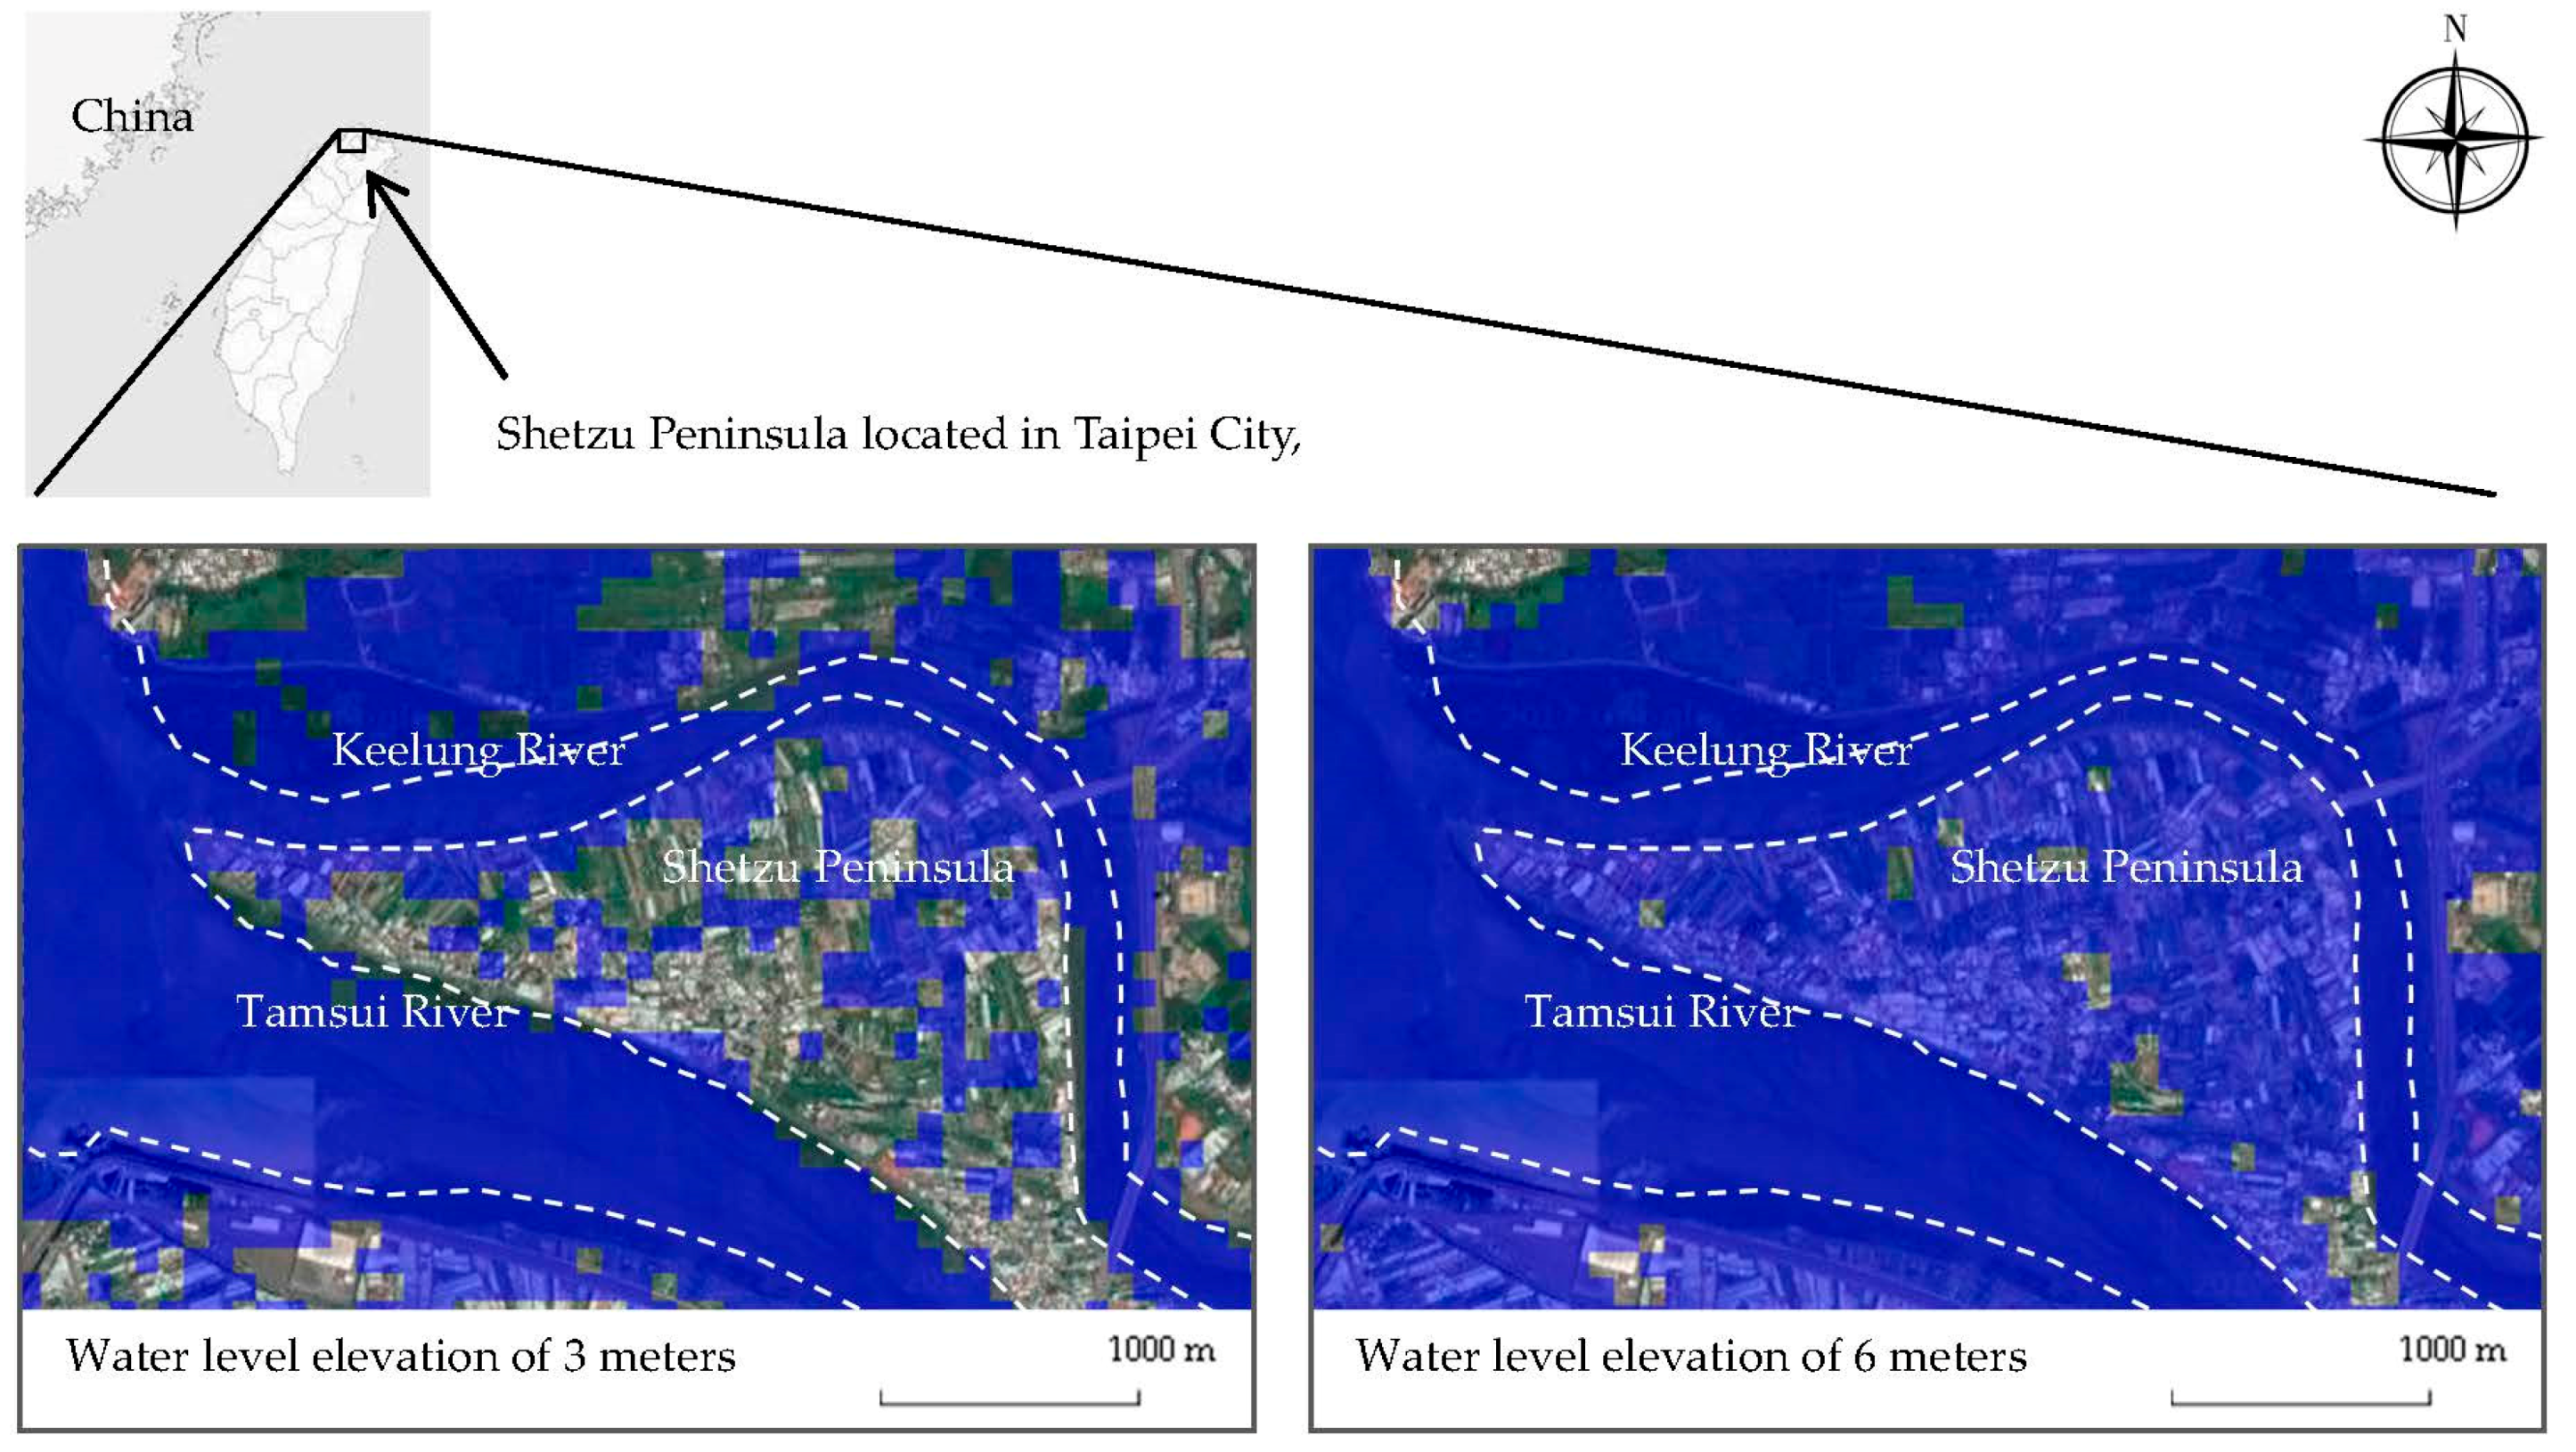 Sustainability free full text exploring flood resilience sustainability free full text exploring flood resilience thinking in the retail sector under climate change a case study of an estuarine region of fandeluxe Gallery